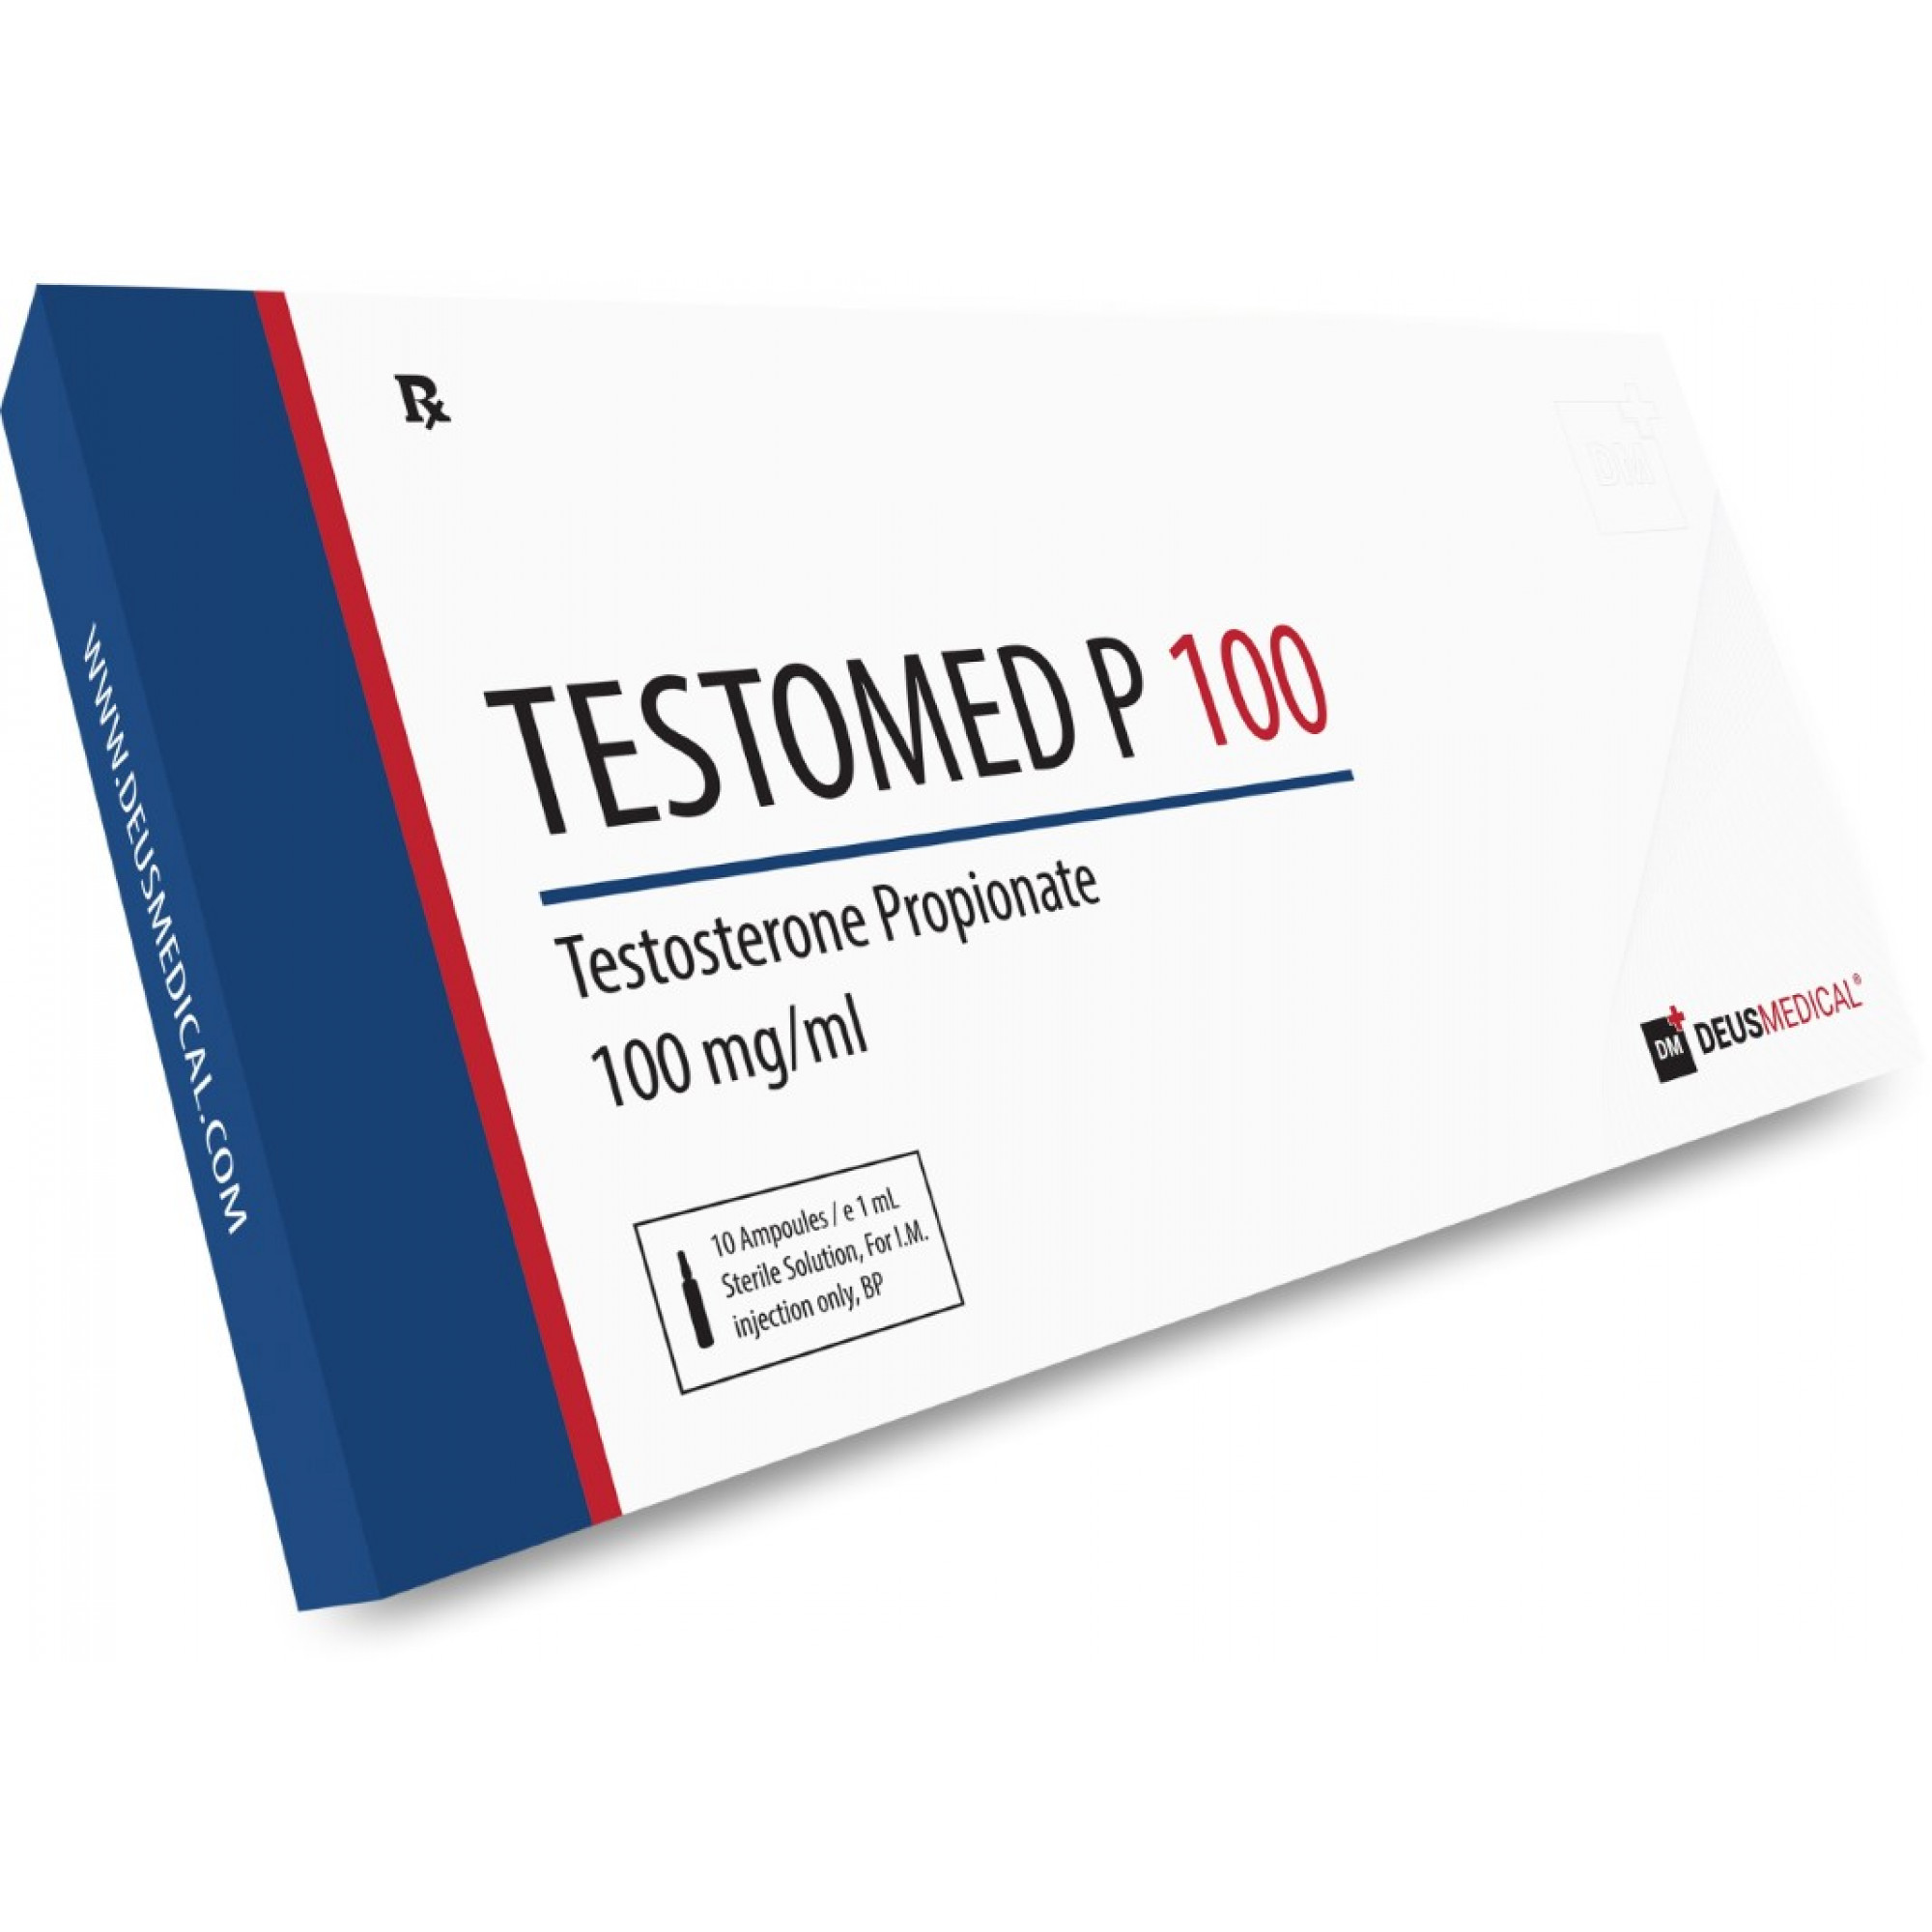 TESTOMED P 100 (Testosterone Propionate), DEUS MEDICAL, BUY STEROIDS ONLINE - www.DEUSPOWER.com